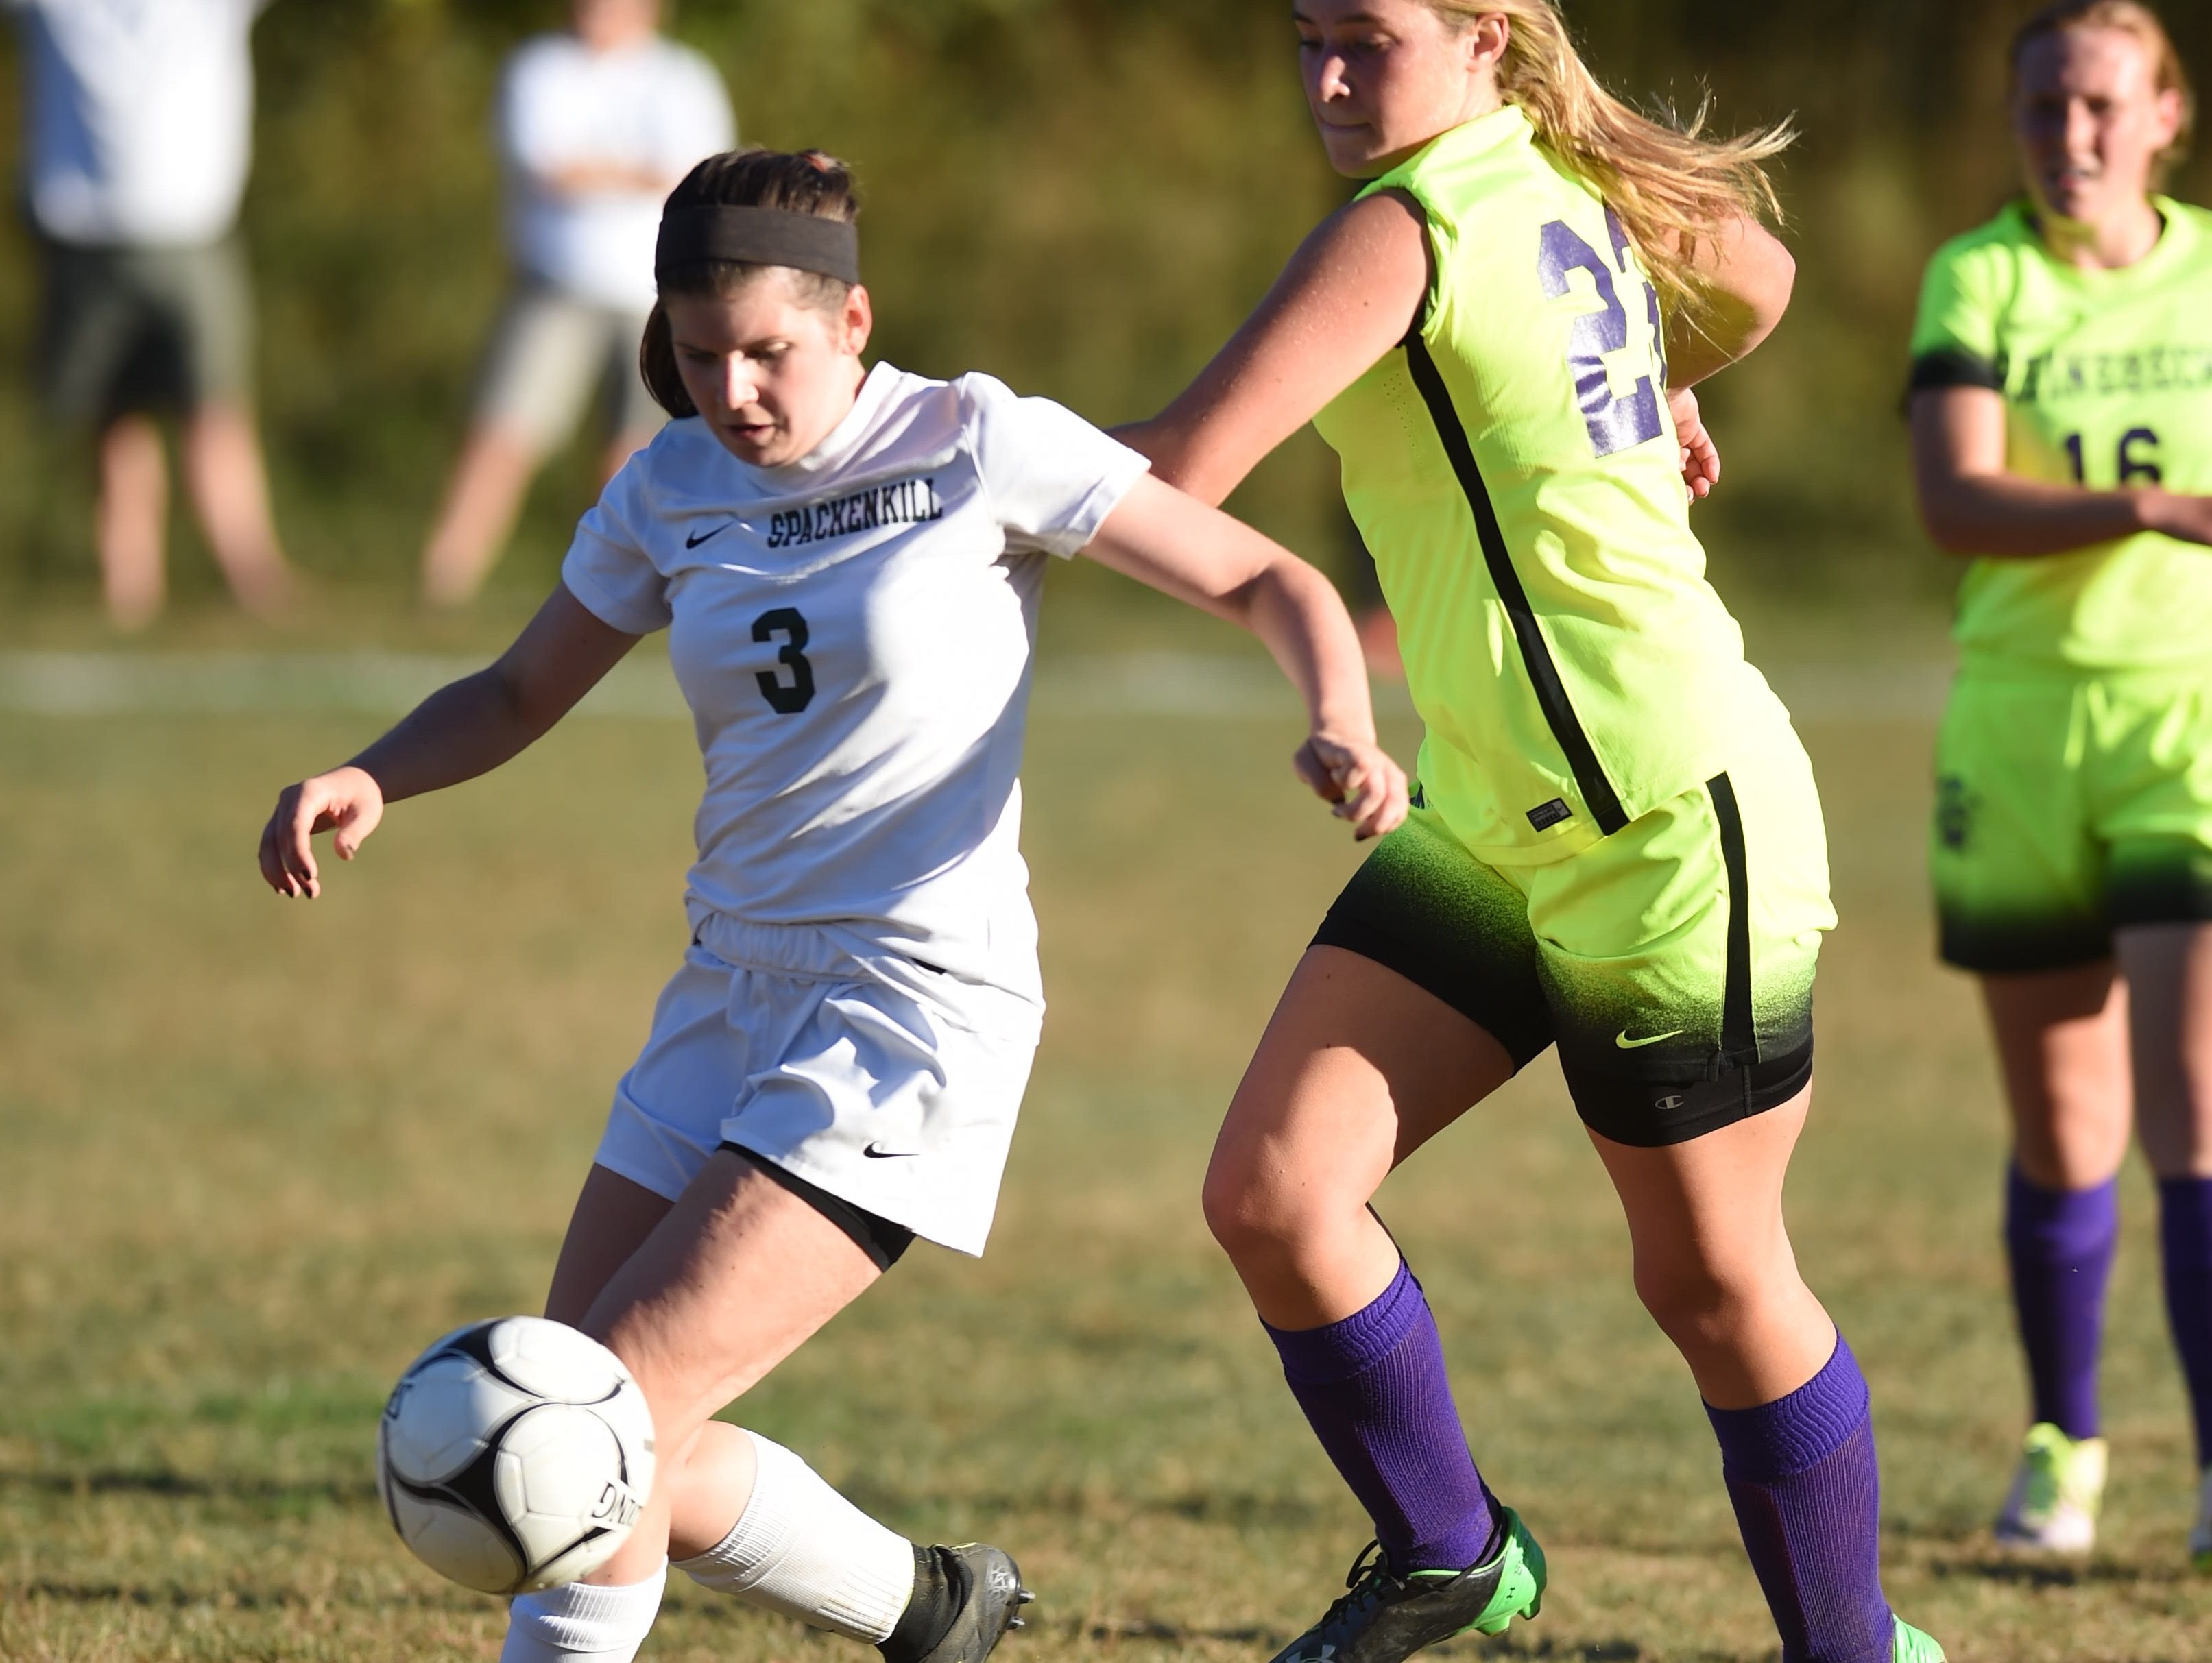 Spackenkill's Madison Cutler draws the ball away from Rhinebeck's Elizabeth Callahan during Thursday's game at Spackenkill.